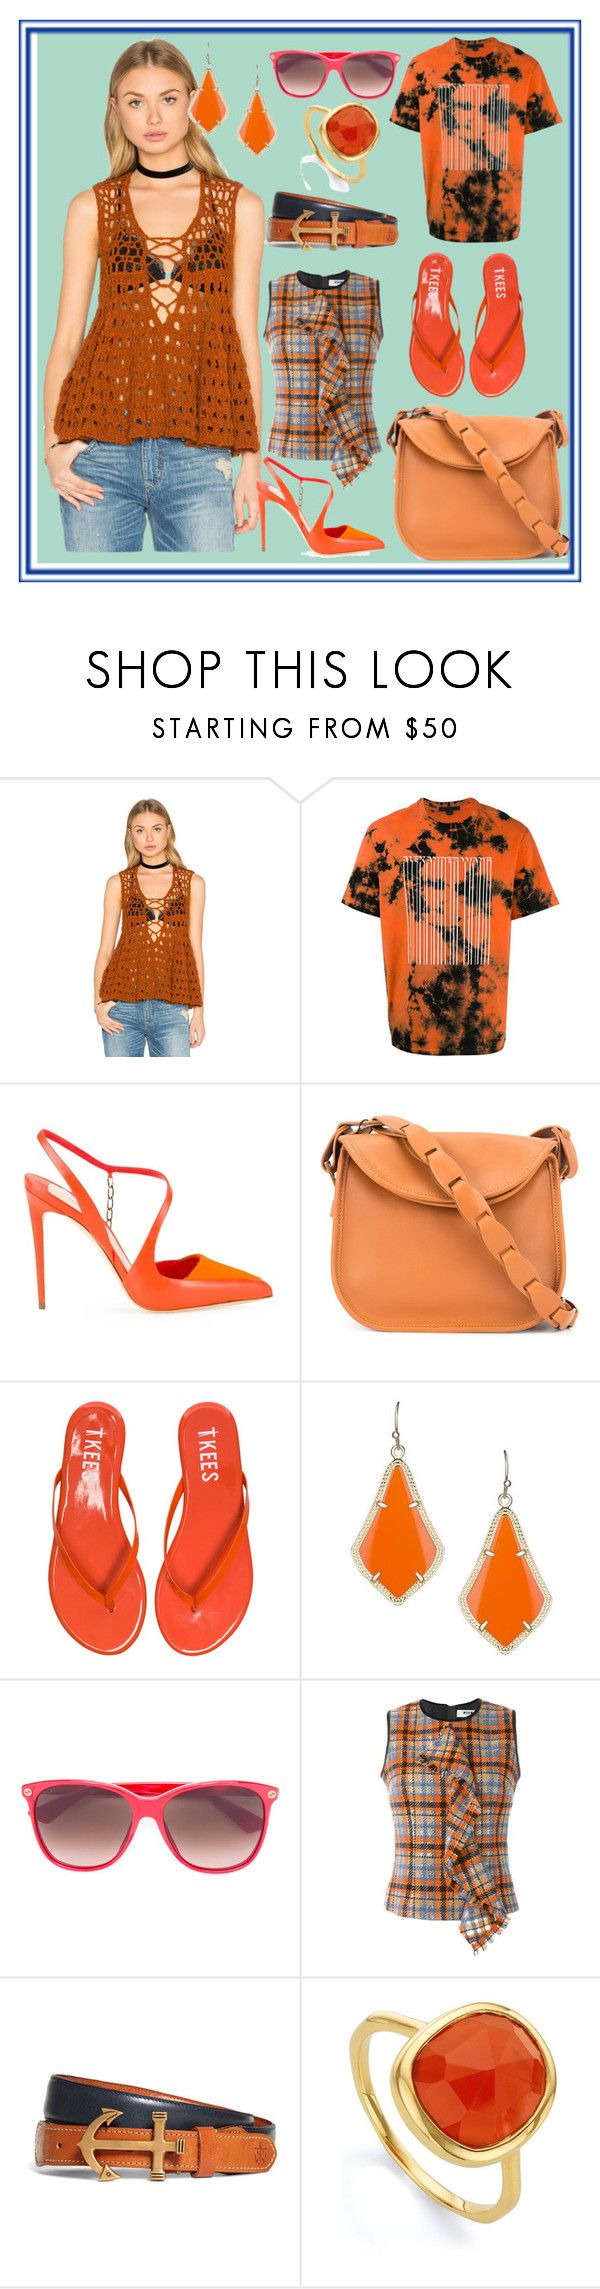 """""""Orange Country"""" by cate-jennifer ❤ liked on Polyvore featuring Free People, Alexander Wang, Olgana, 10 Crosby Derek Lam, Tkees, Kendra Scott, Gucci, MSGM, Brooks Brothers and Monica Vinader"""